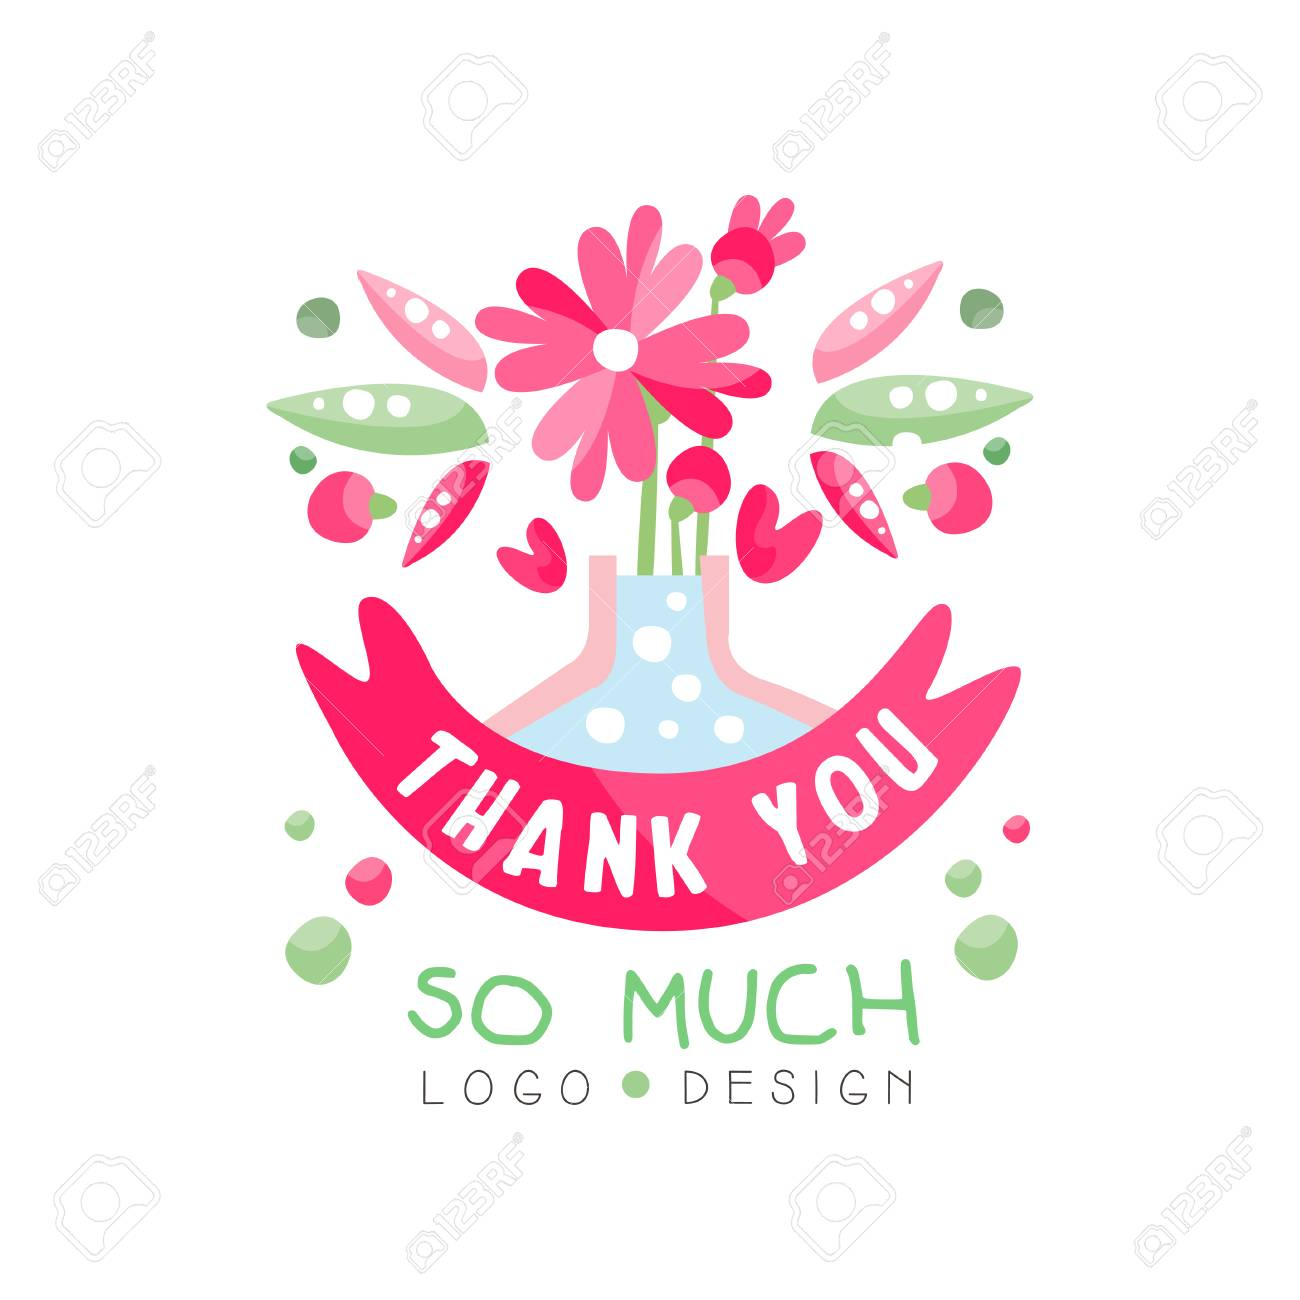 Thank You So Much logo design, holiday card, banner, invitation with lettering, colorful label with floral elements vector Illustration - 115693659